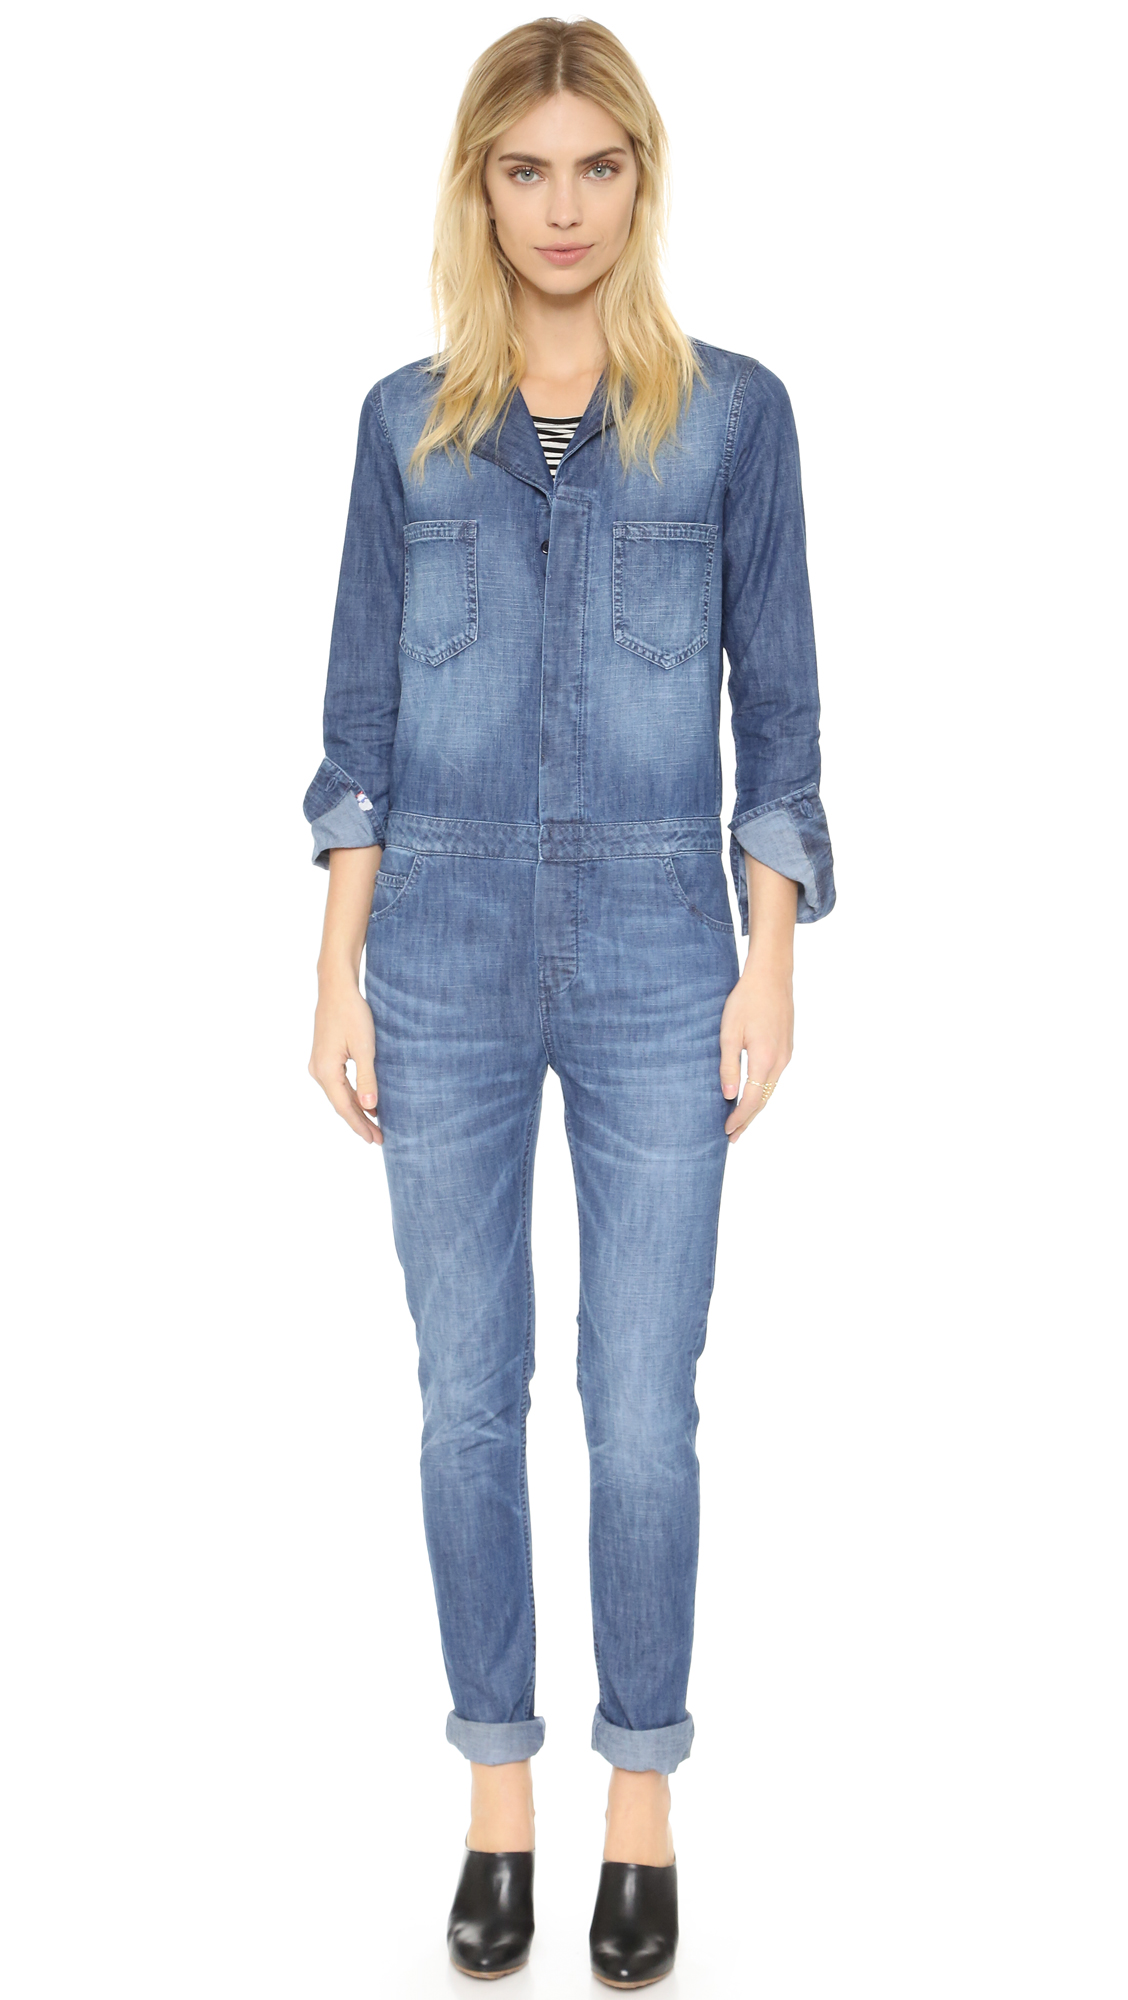 679410381eb Etienne Marcel Denim Jumpsuit on PopScreen